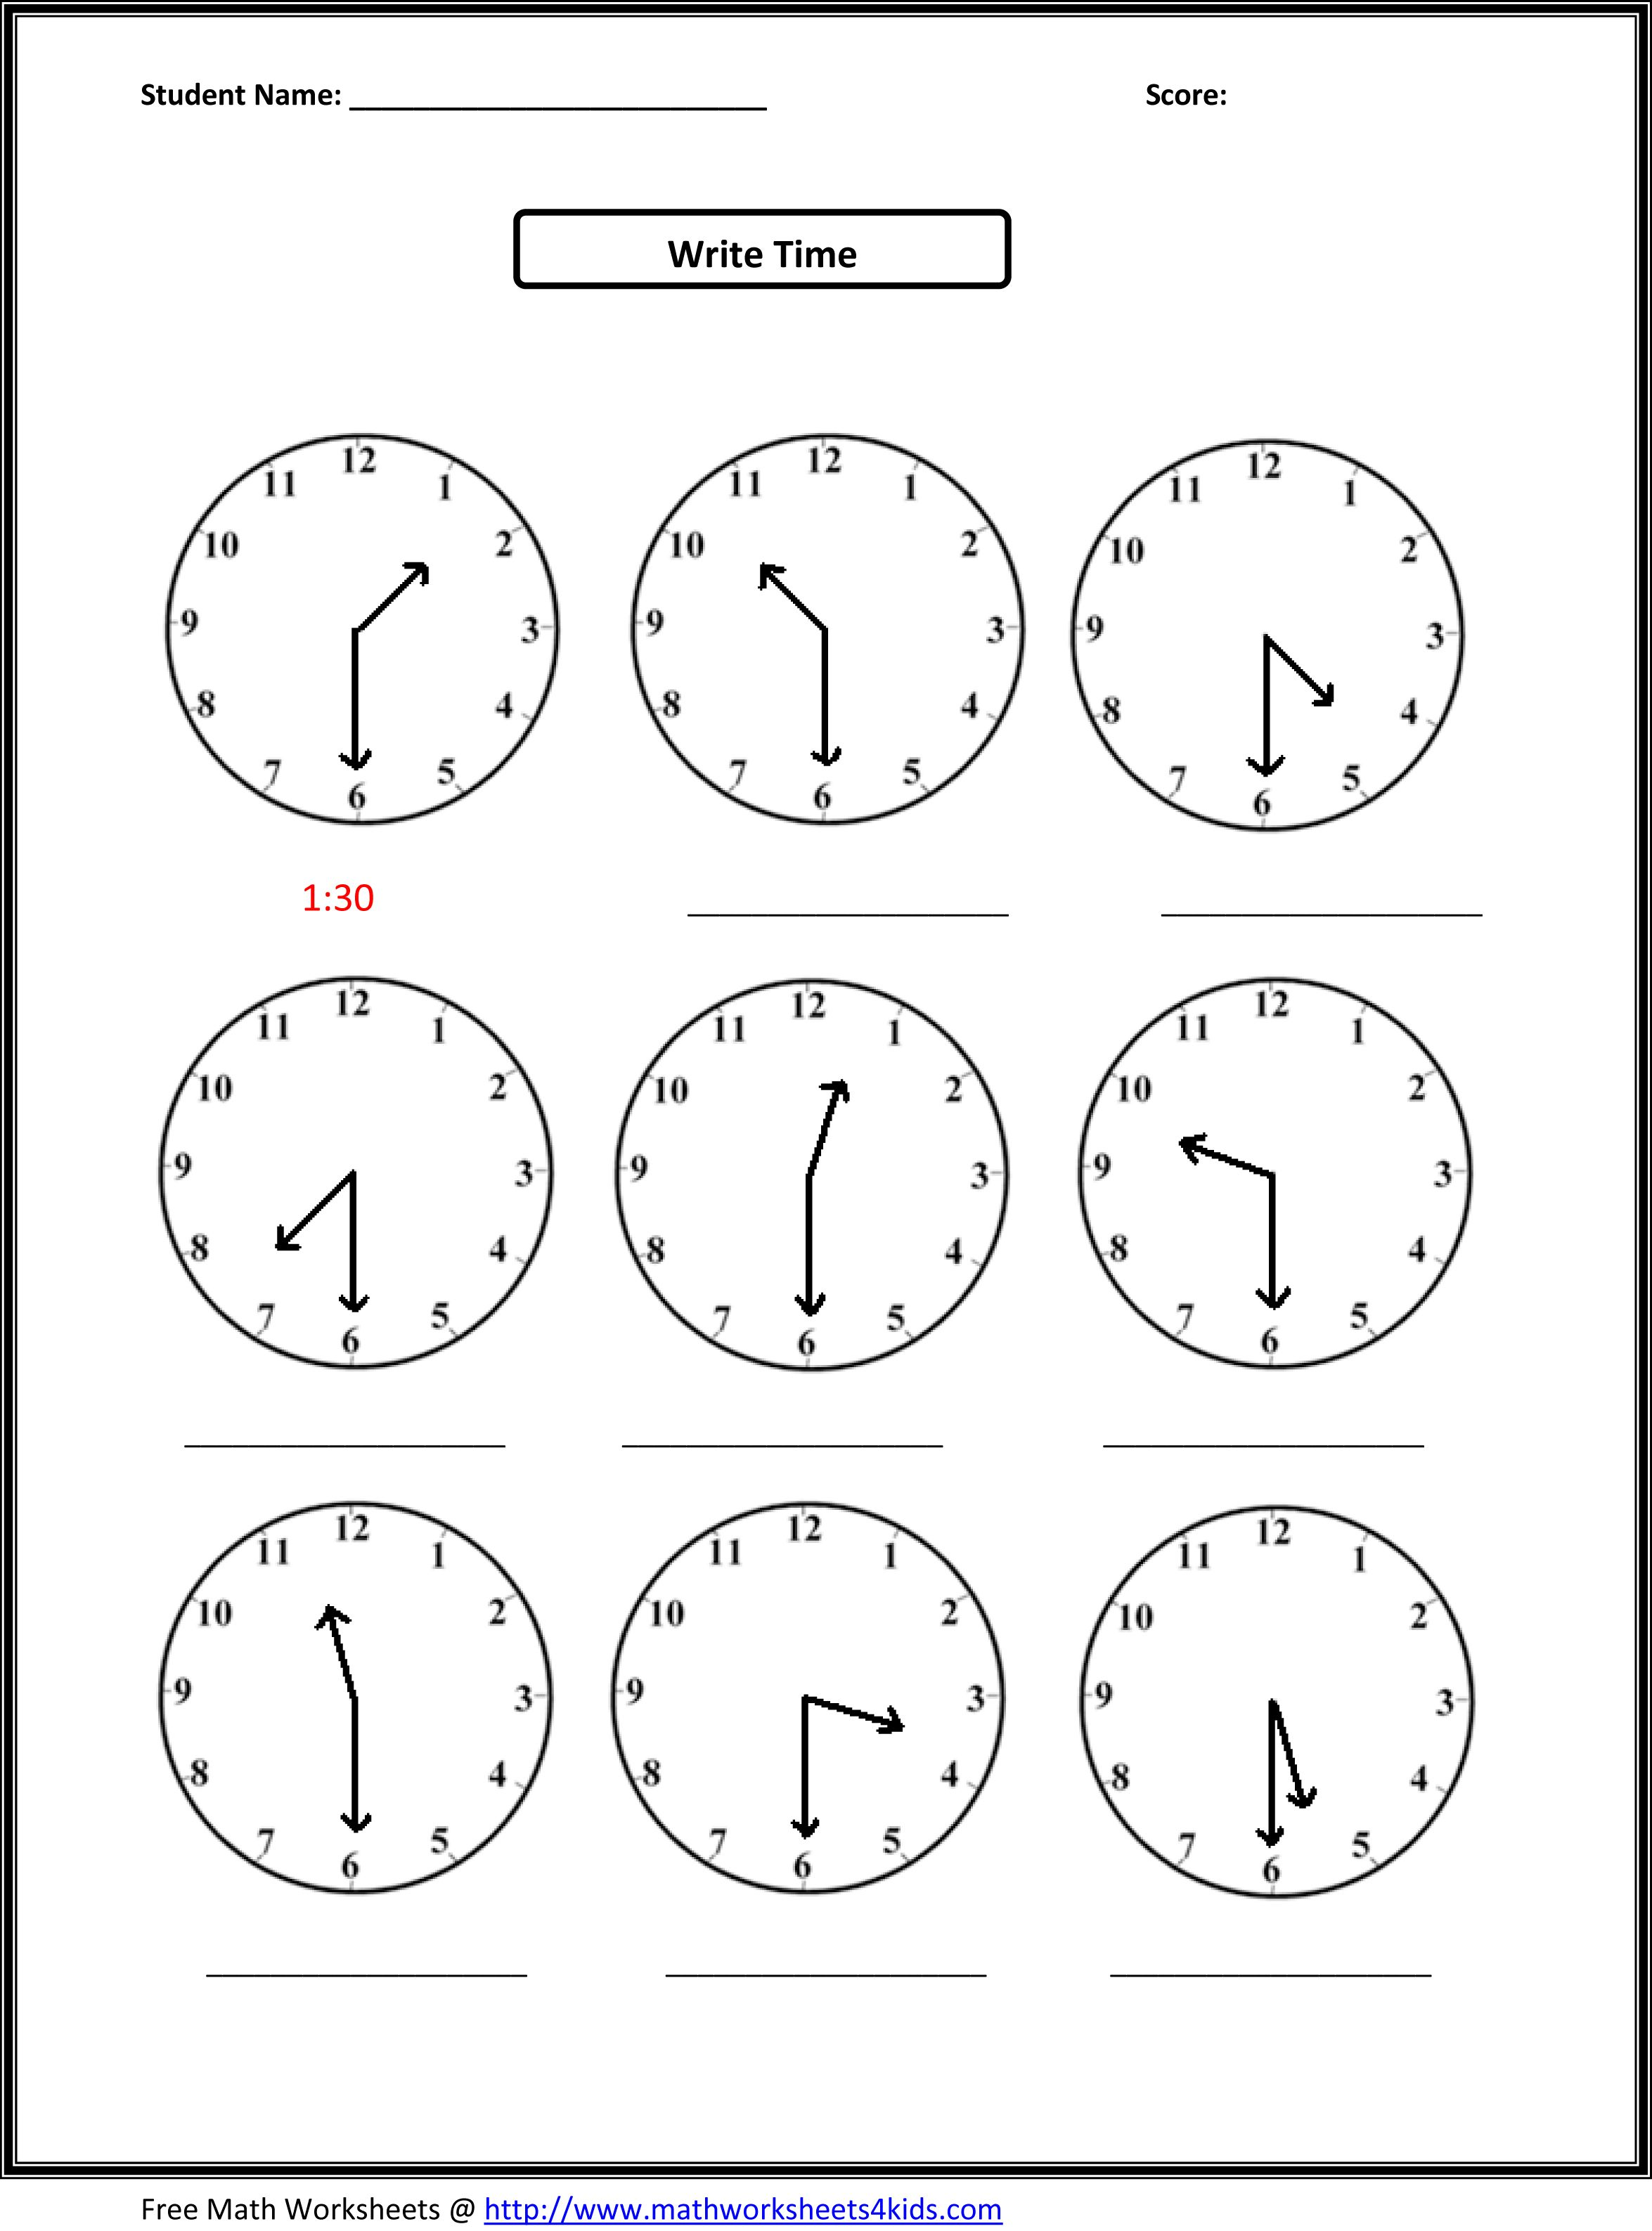 Proatmealus  Stunning Worksheet On Time For Grade   Reocurent With Luxury Free Printable Telling Time Worksheets Nd Grade  Reocurent With Awesome Symbiotic Relationships Worksheets Also Second Grade Math Practice Worksheets In Addition Word Problems Th Grade Worksheets And Place Value Through Hundred Thousands Worksheet As Well As Pumpkin Math Worksheet Additionally Amendment Process Worksheet From Reocurentcom With Proatmealus  Luxury Worksheet On Time For Grade   Reocurent With Awesome Free Printable Telling Time Worksheets Nd Grade  Reocurent And Stunning Symbiotic Relationships Worksheets Also Second Grade Math Practice Worksheets In Addition Word Problems Th Grade Worksheets From Reocurentcom